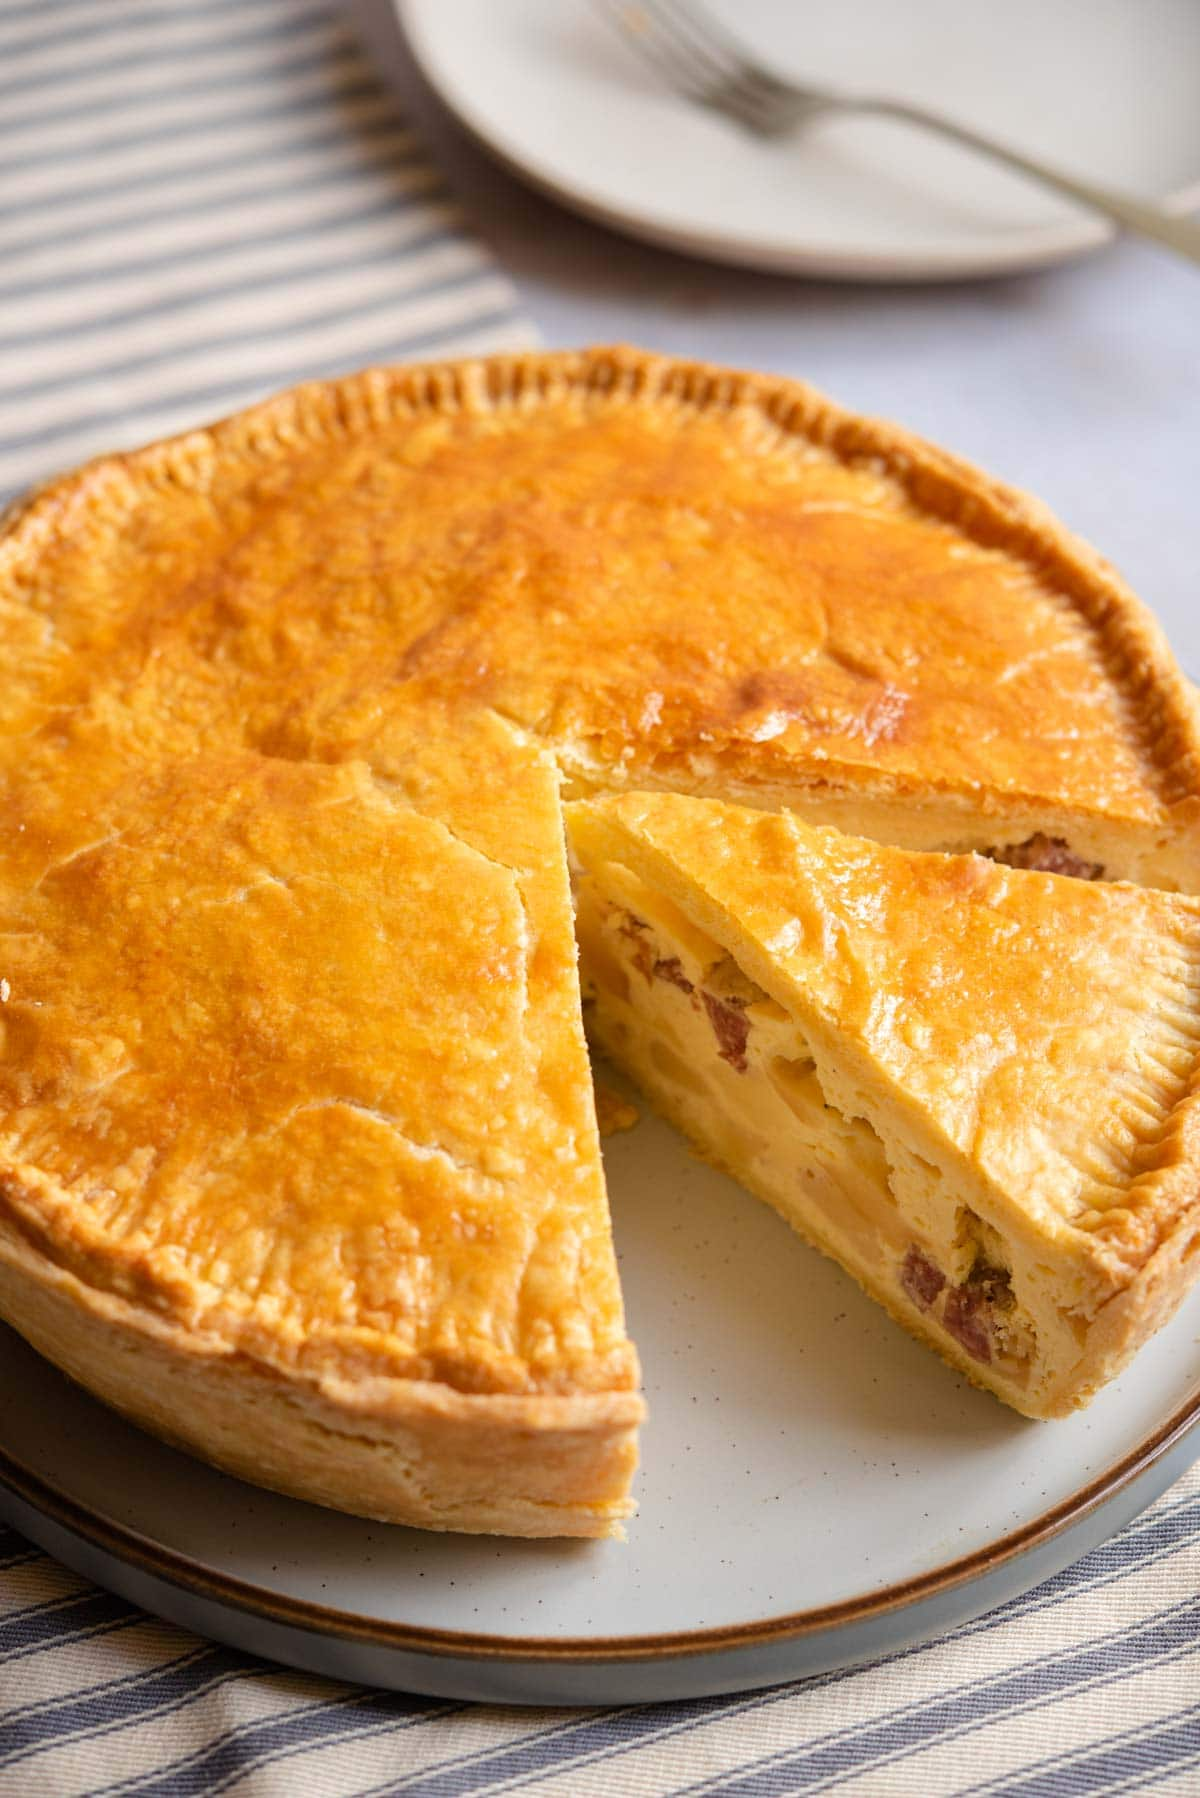 Pizza Rustica on a serving plate with a slice cut